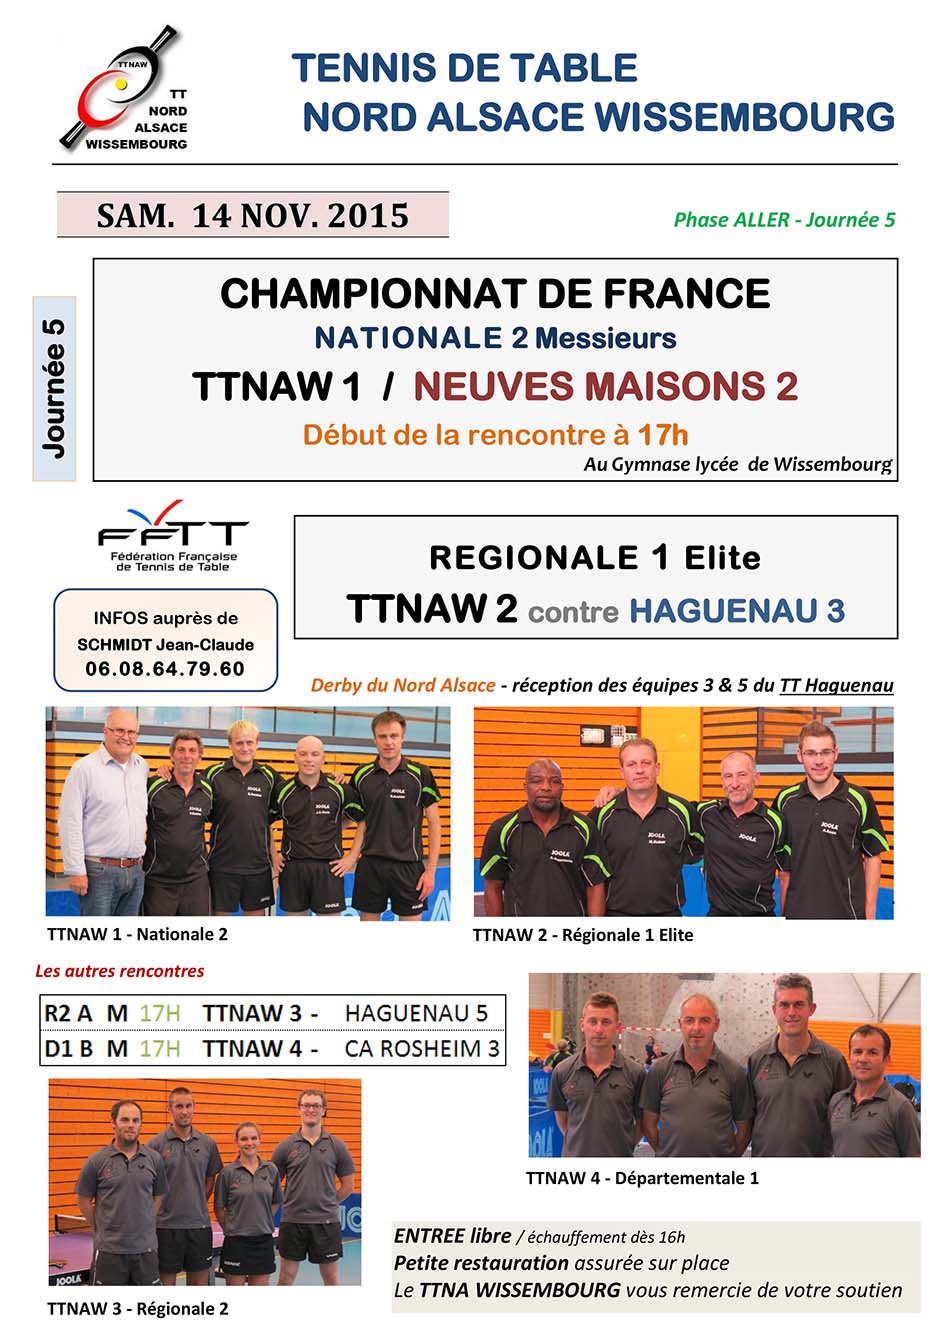 Tennis de Table NORD ALSACE